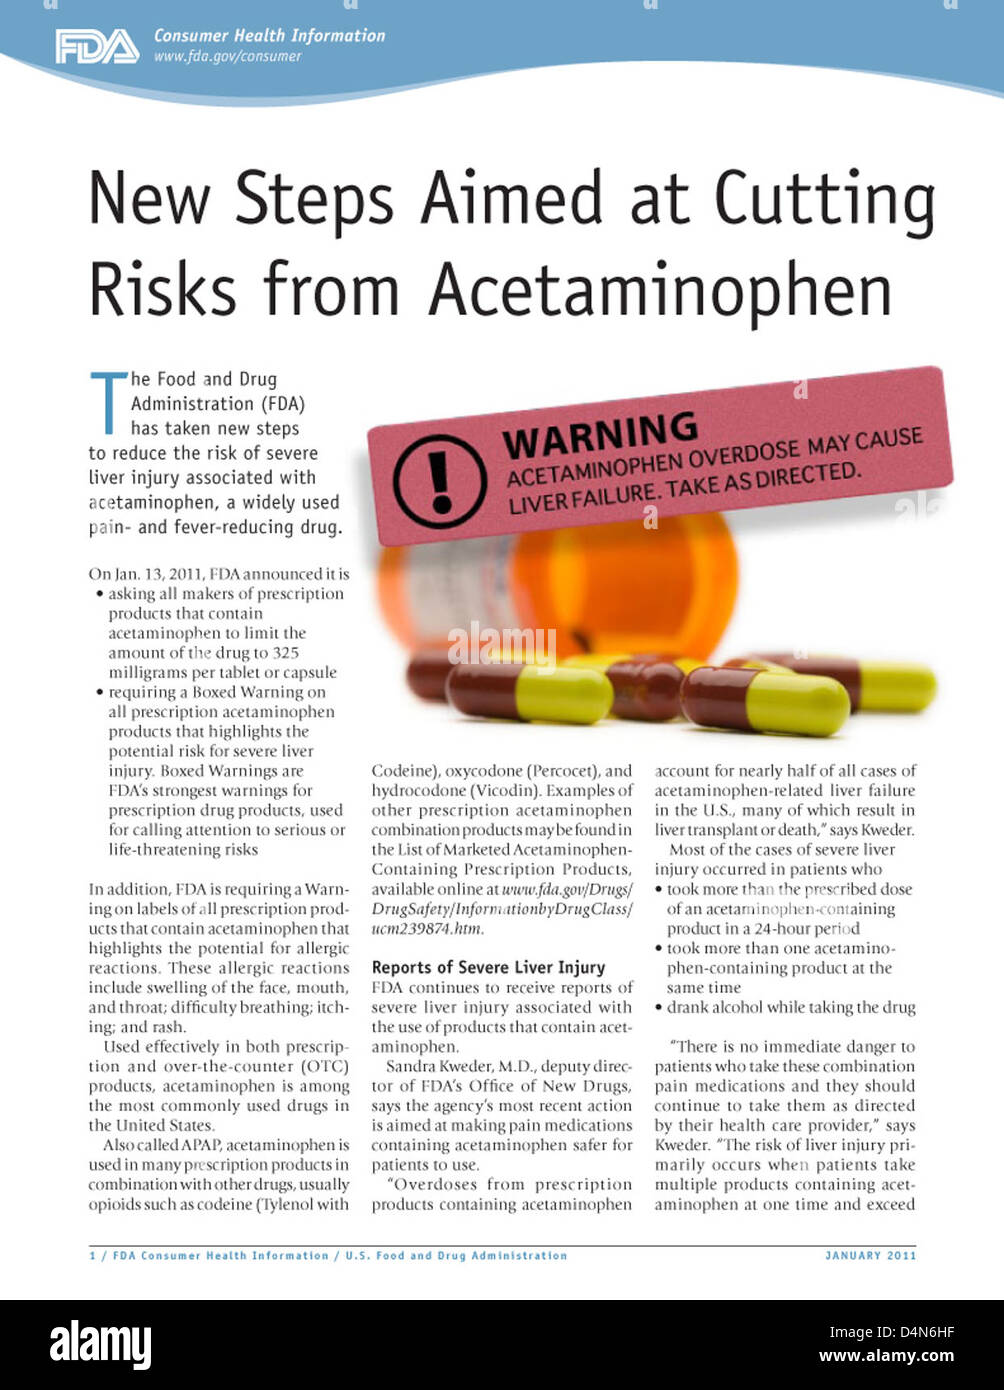 New Steps Aimed at Cutting Risks from Acetaminophen - Stock Image